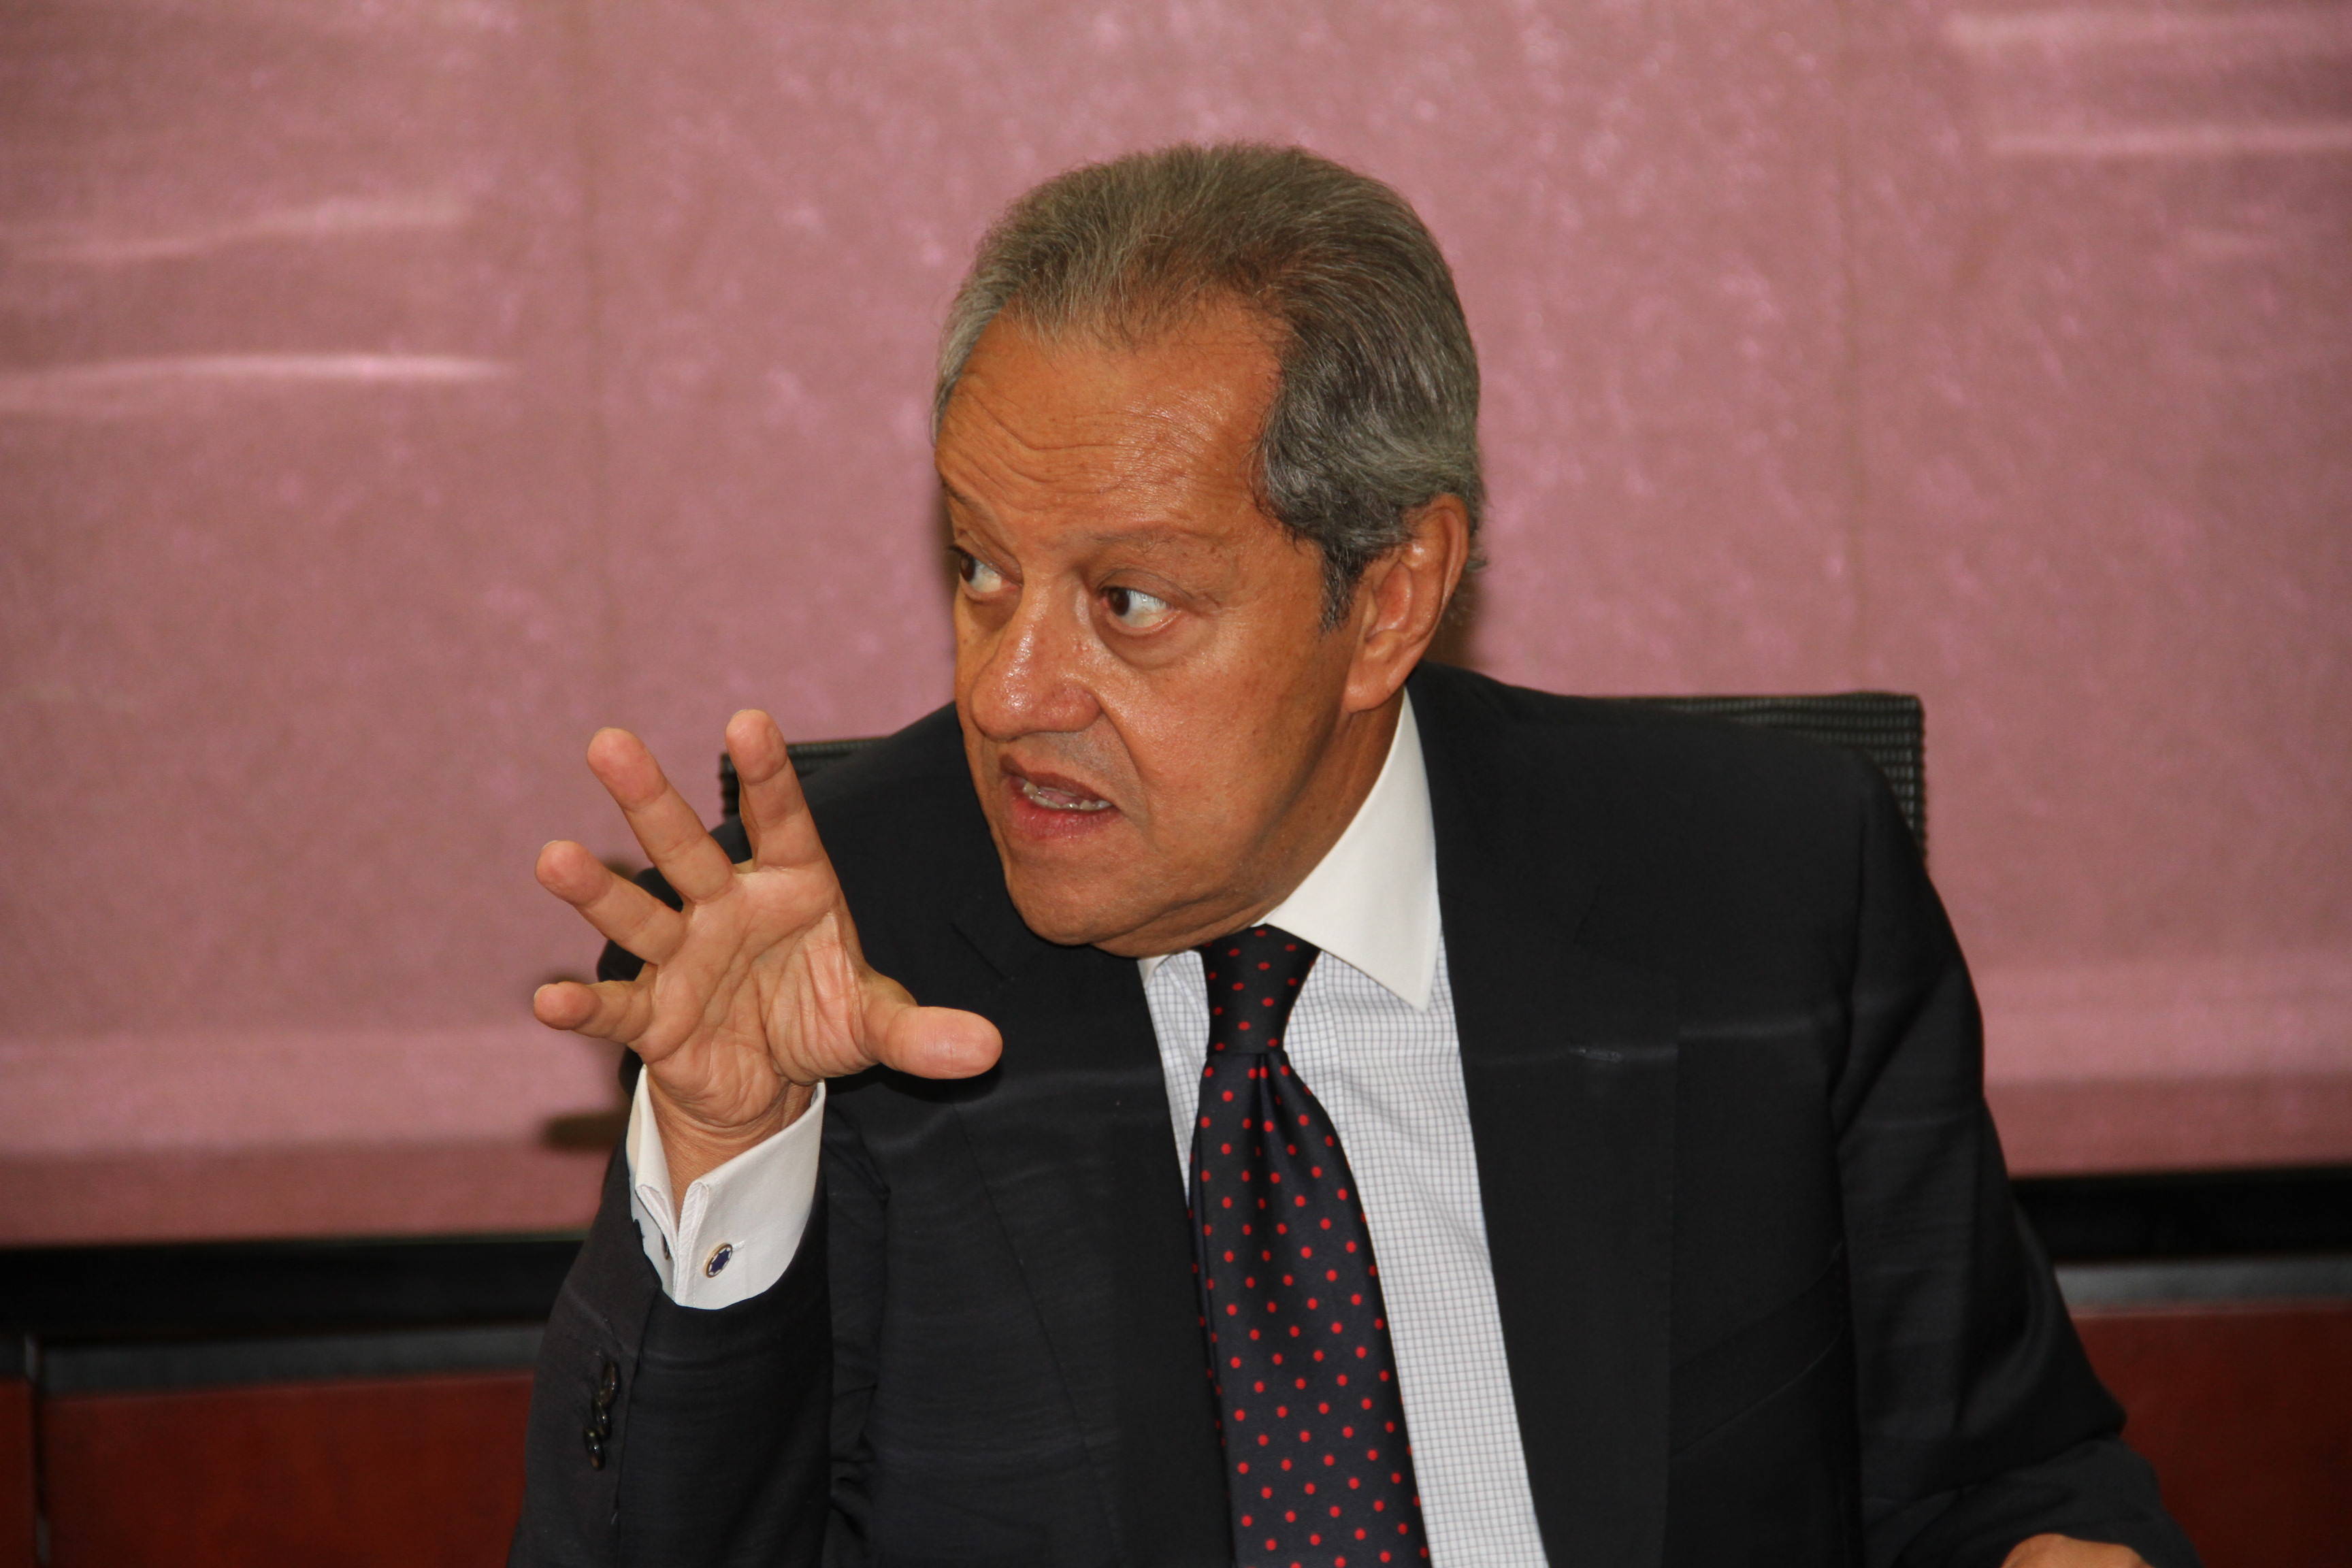 Minister of Industry and Foreign Trade Mounir Fakhry Abdel Nour said that 1,645 final approvals from them are worth EGP 27.9bn in investments (DNE Photo)